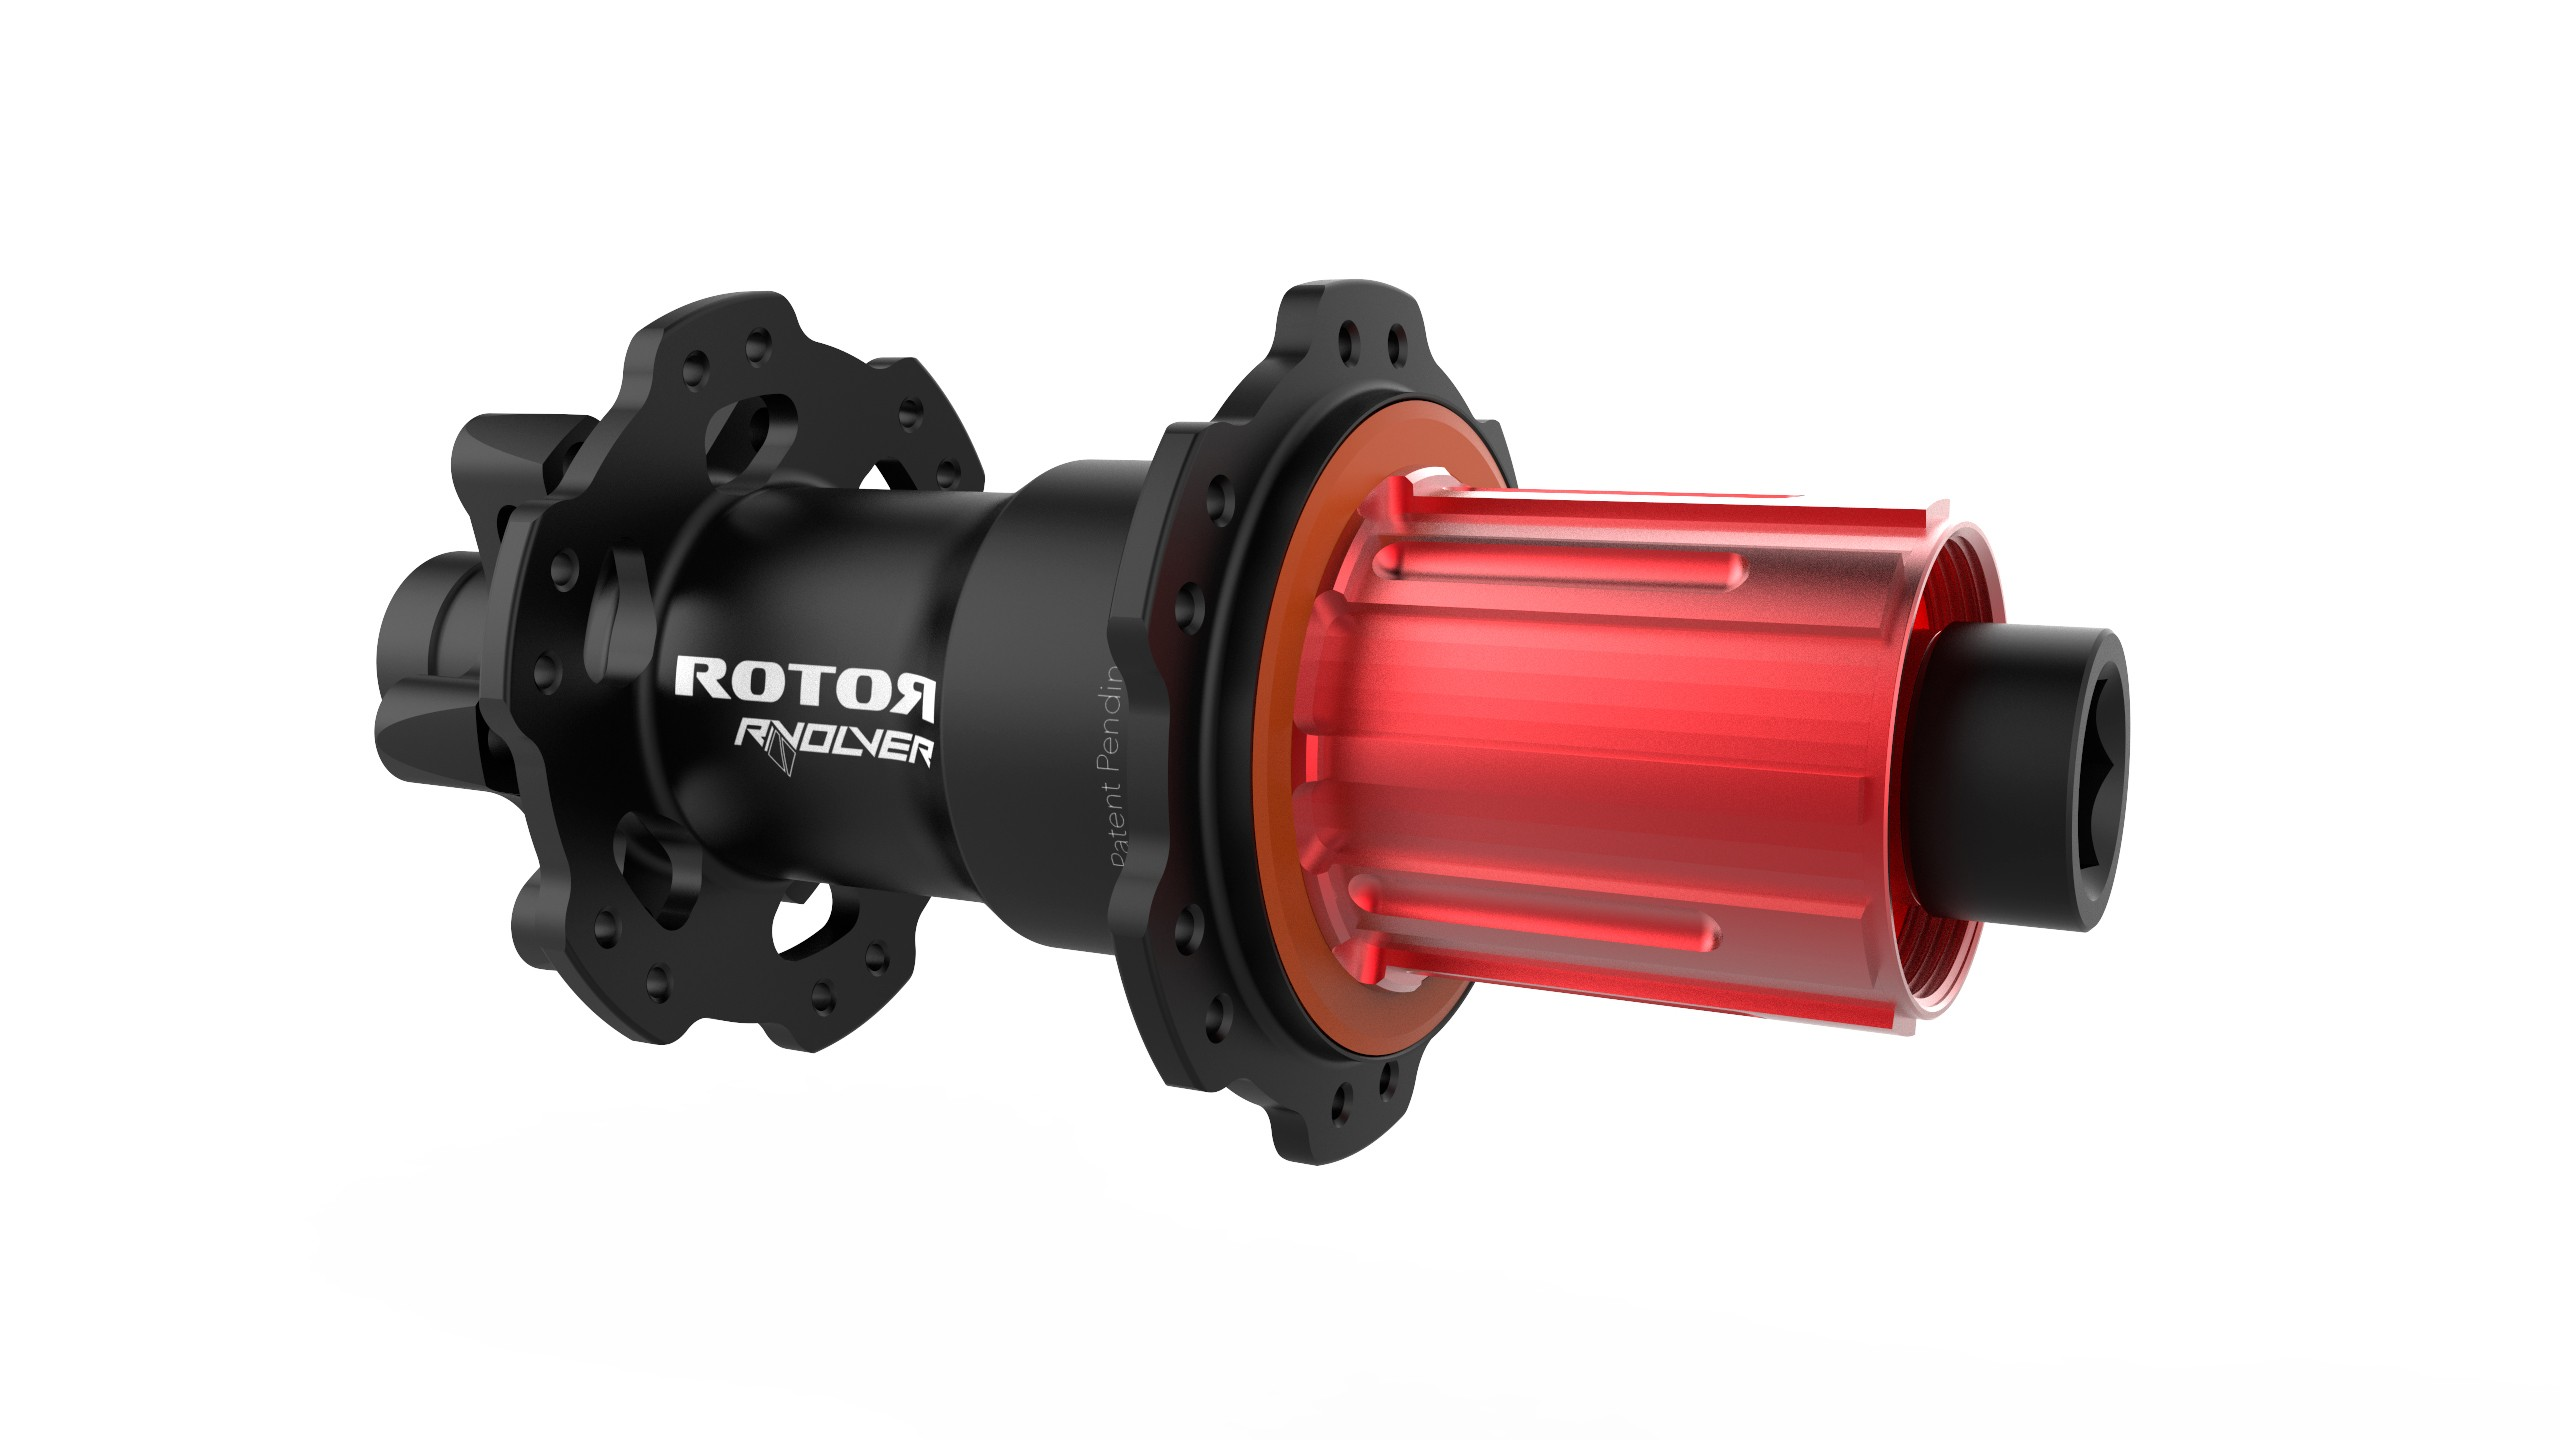 Rotor's RVOLVER hubs are easily distinguished thanks to red anodising at the cassette body